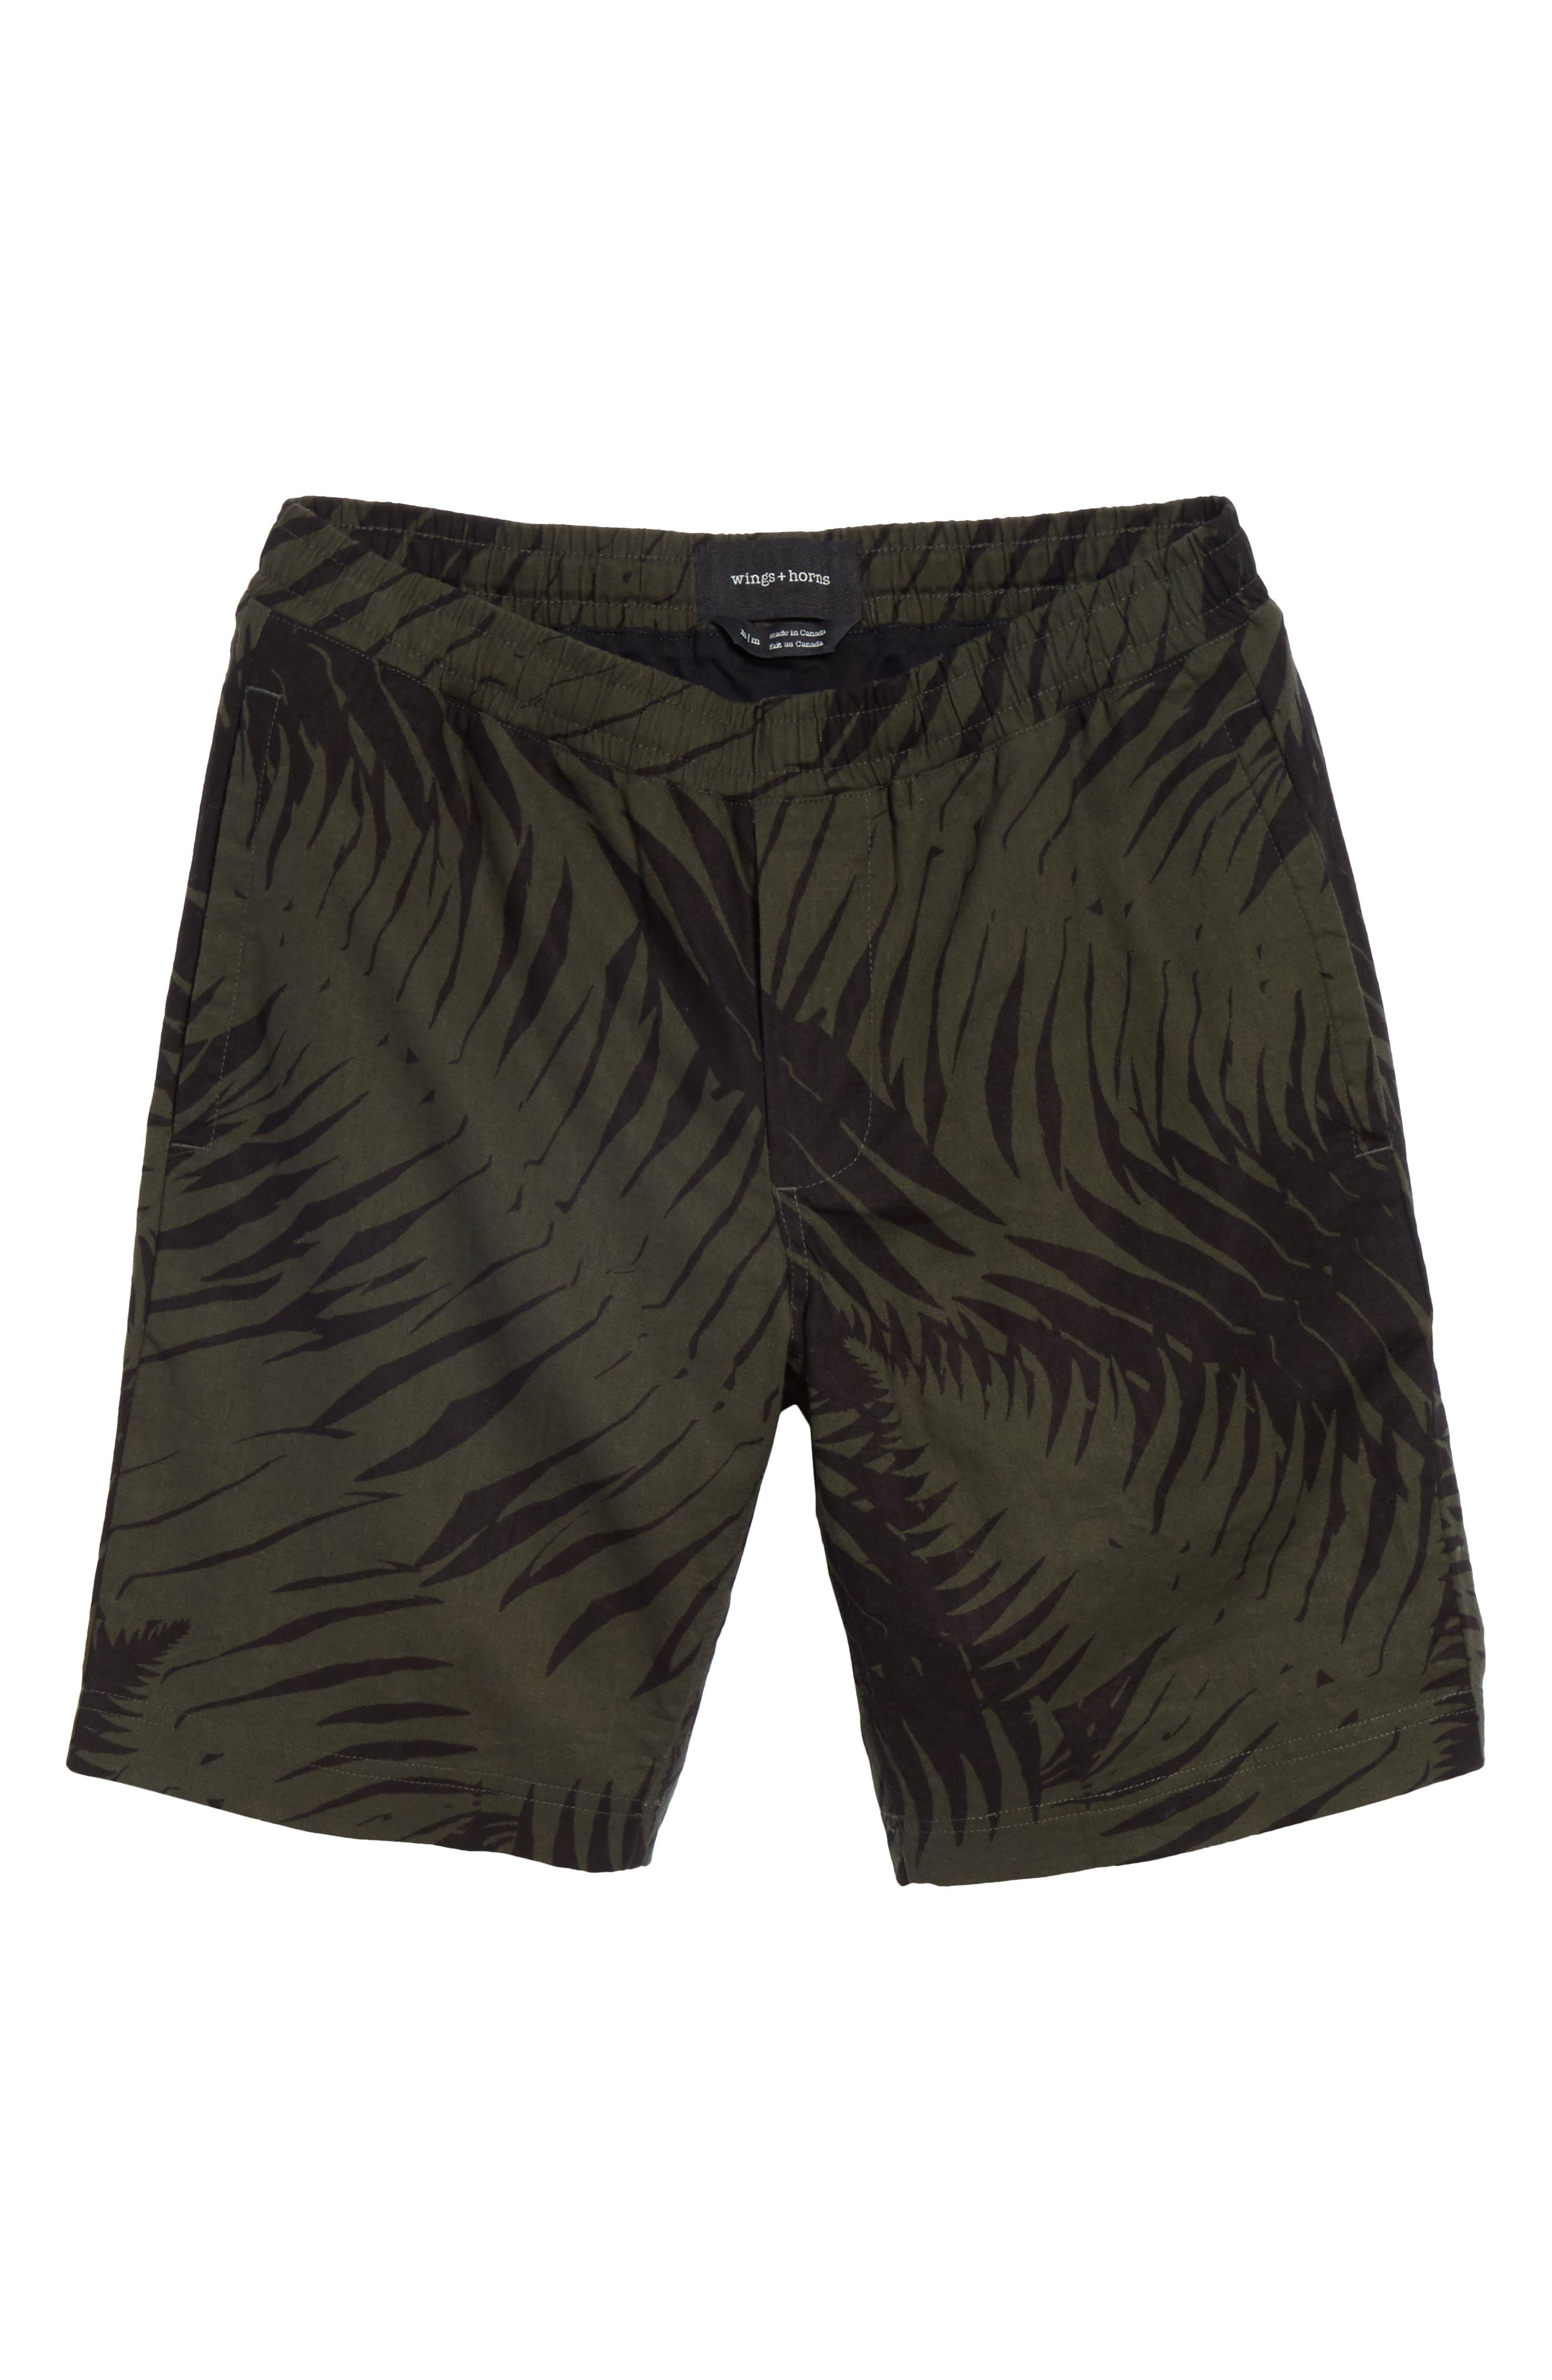 Sword Fern Patrol Shorts,                             Alternate thumbnail 6, color,                             Jungle Green